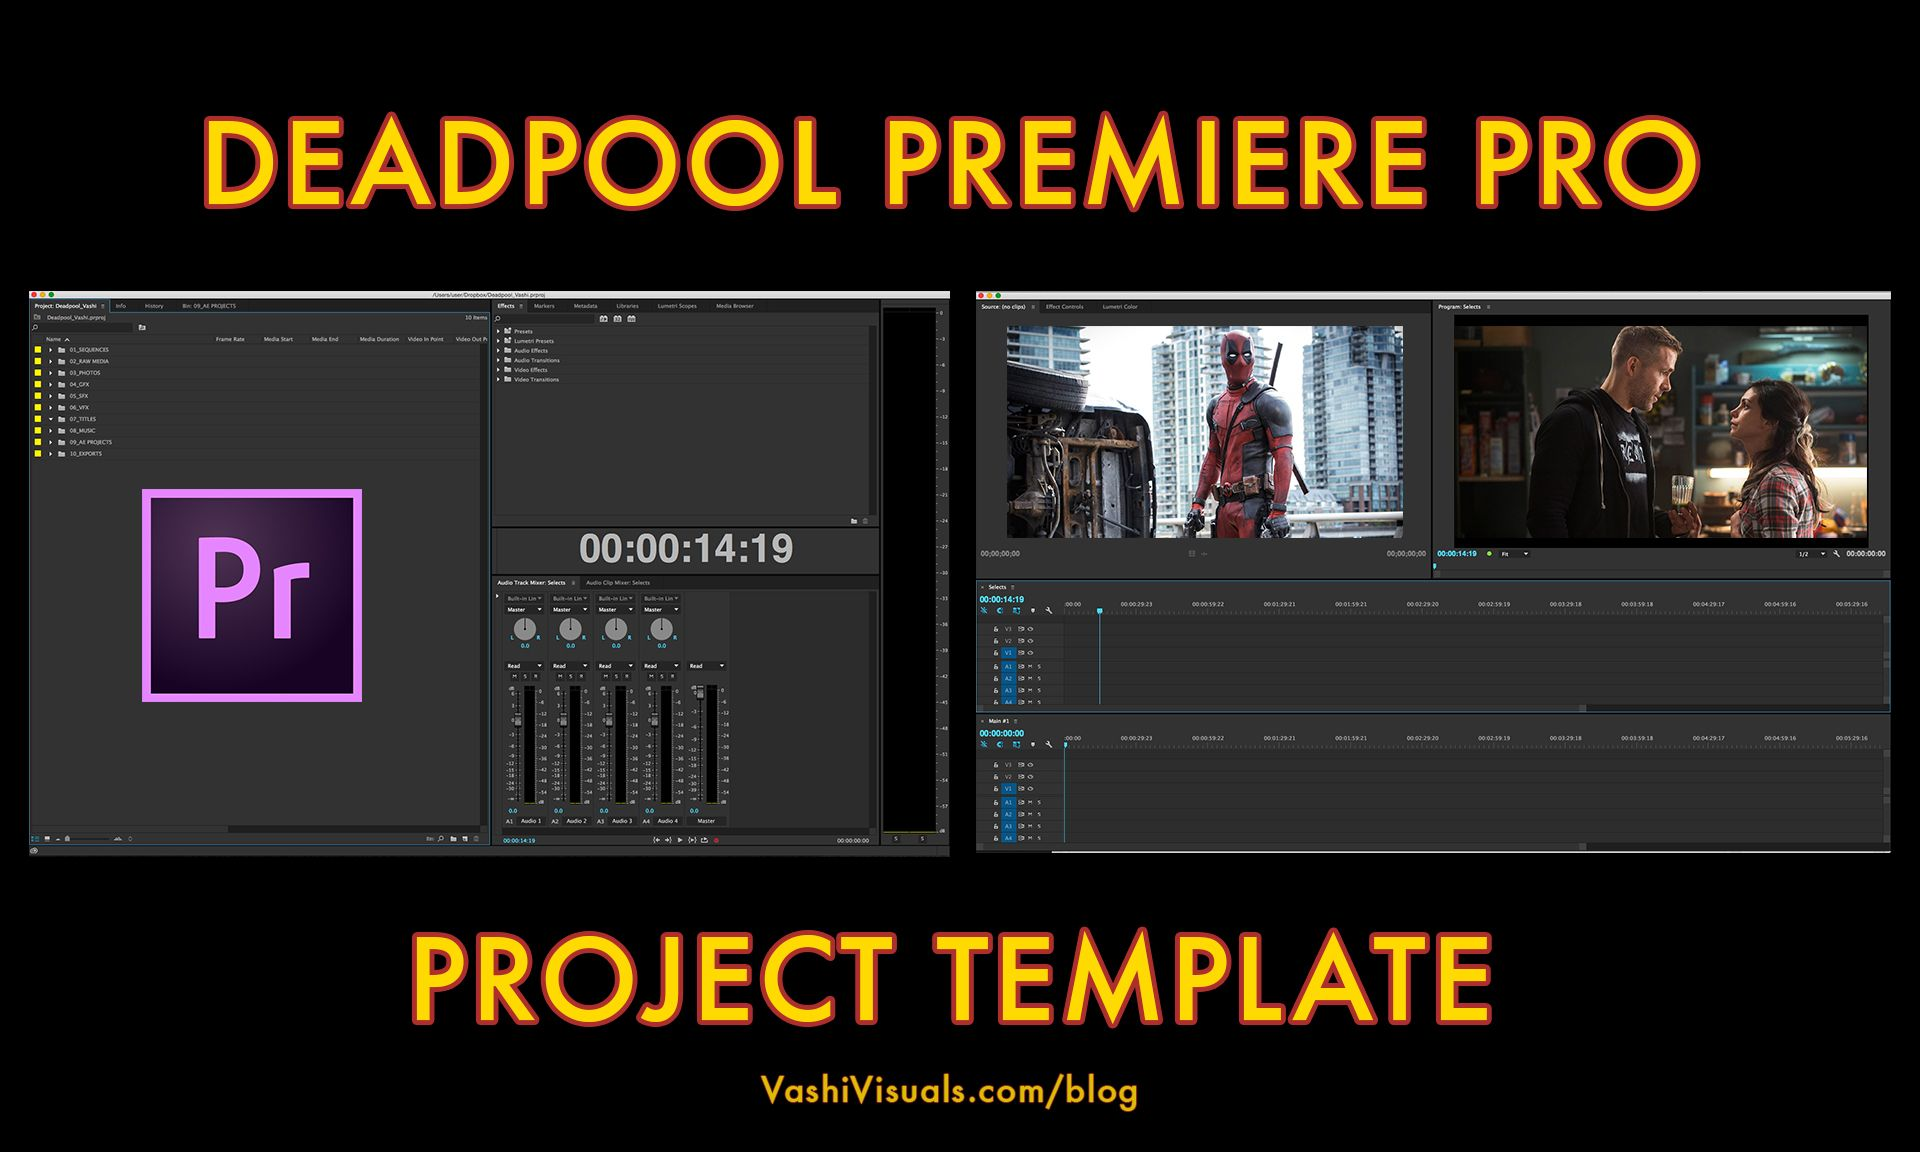 Deadpool premiere pro project template editing resources deadpool premiere pro project templateblog spiritdancerdesigns Gallery